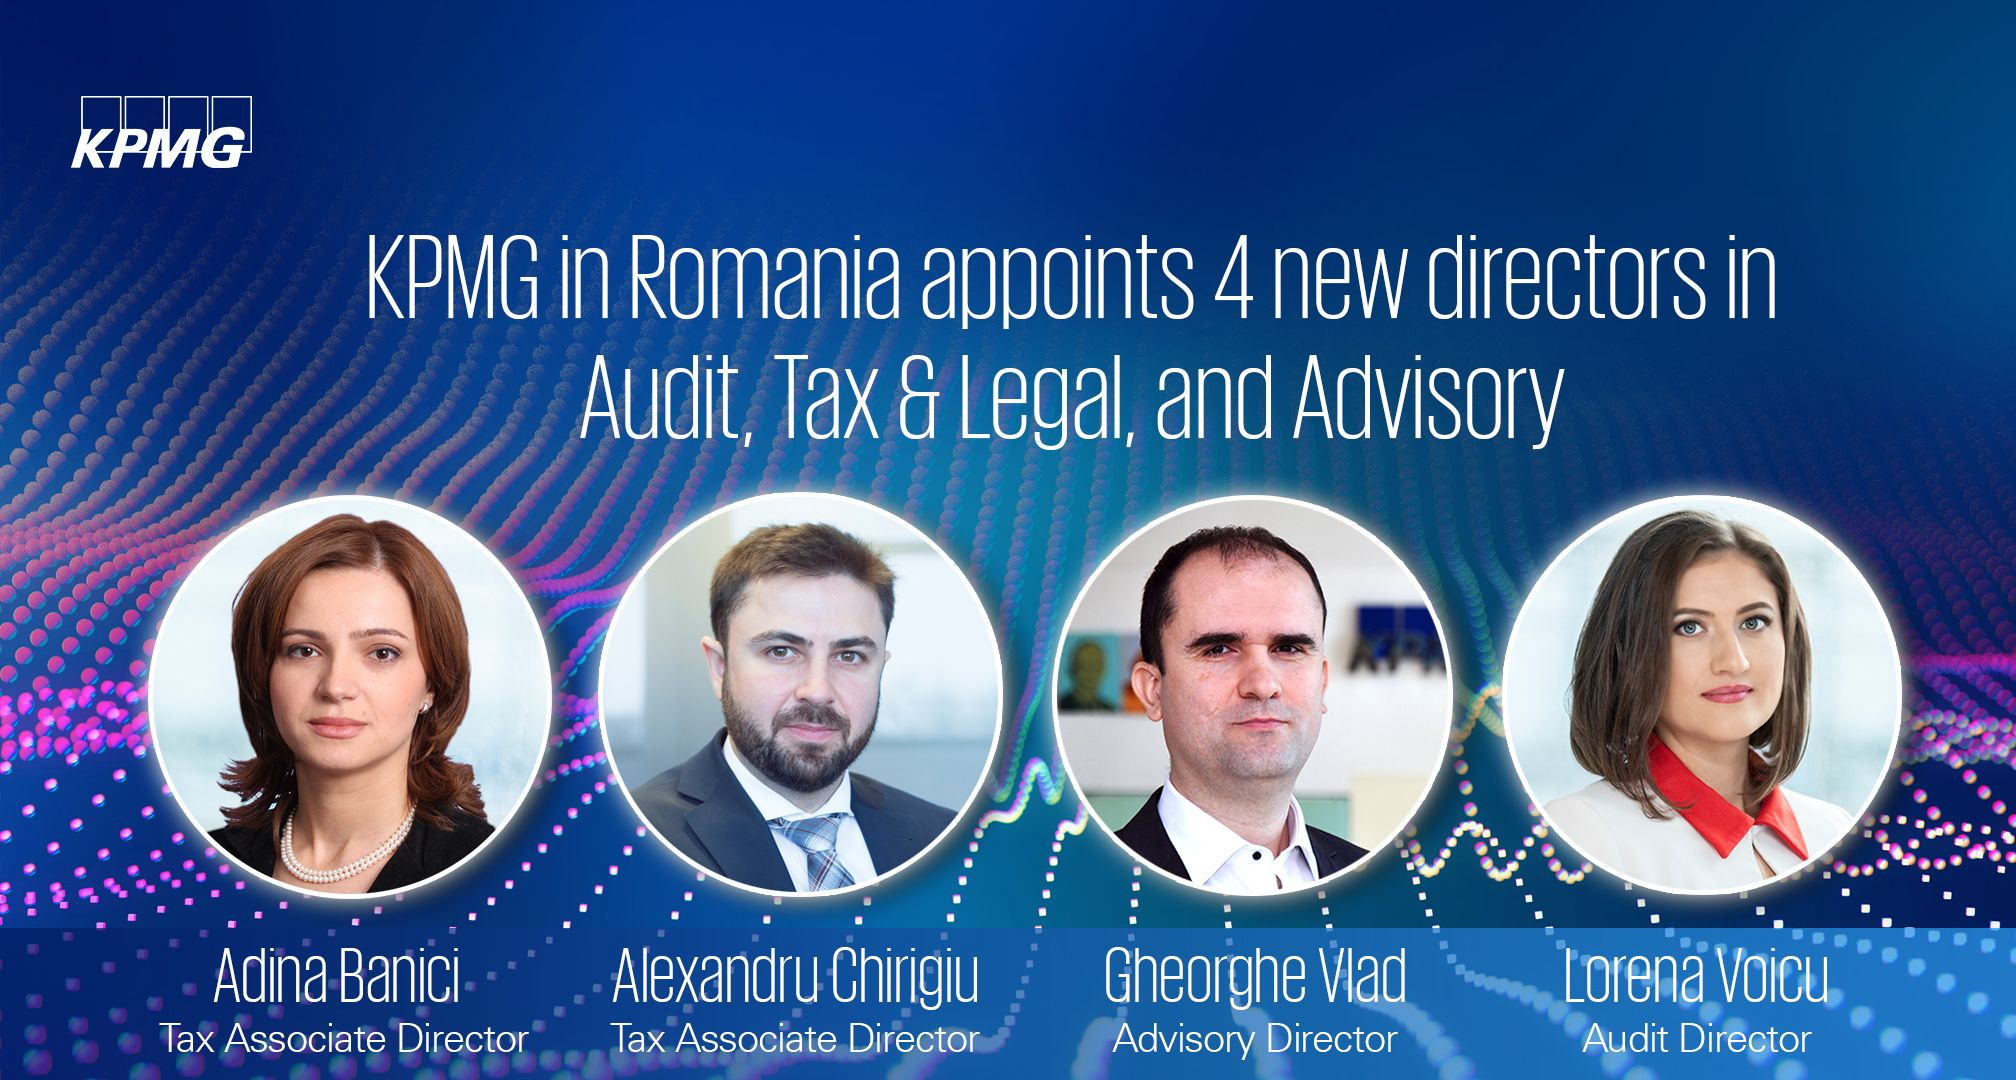 KPMG in Romania appoints new directors